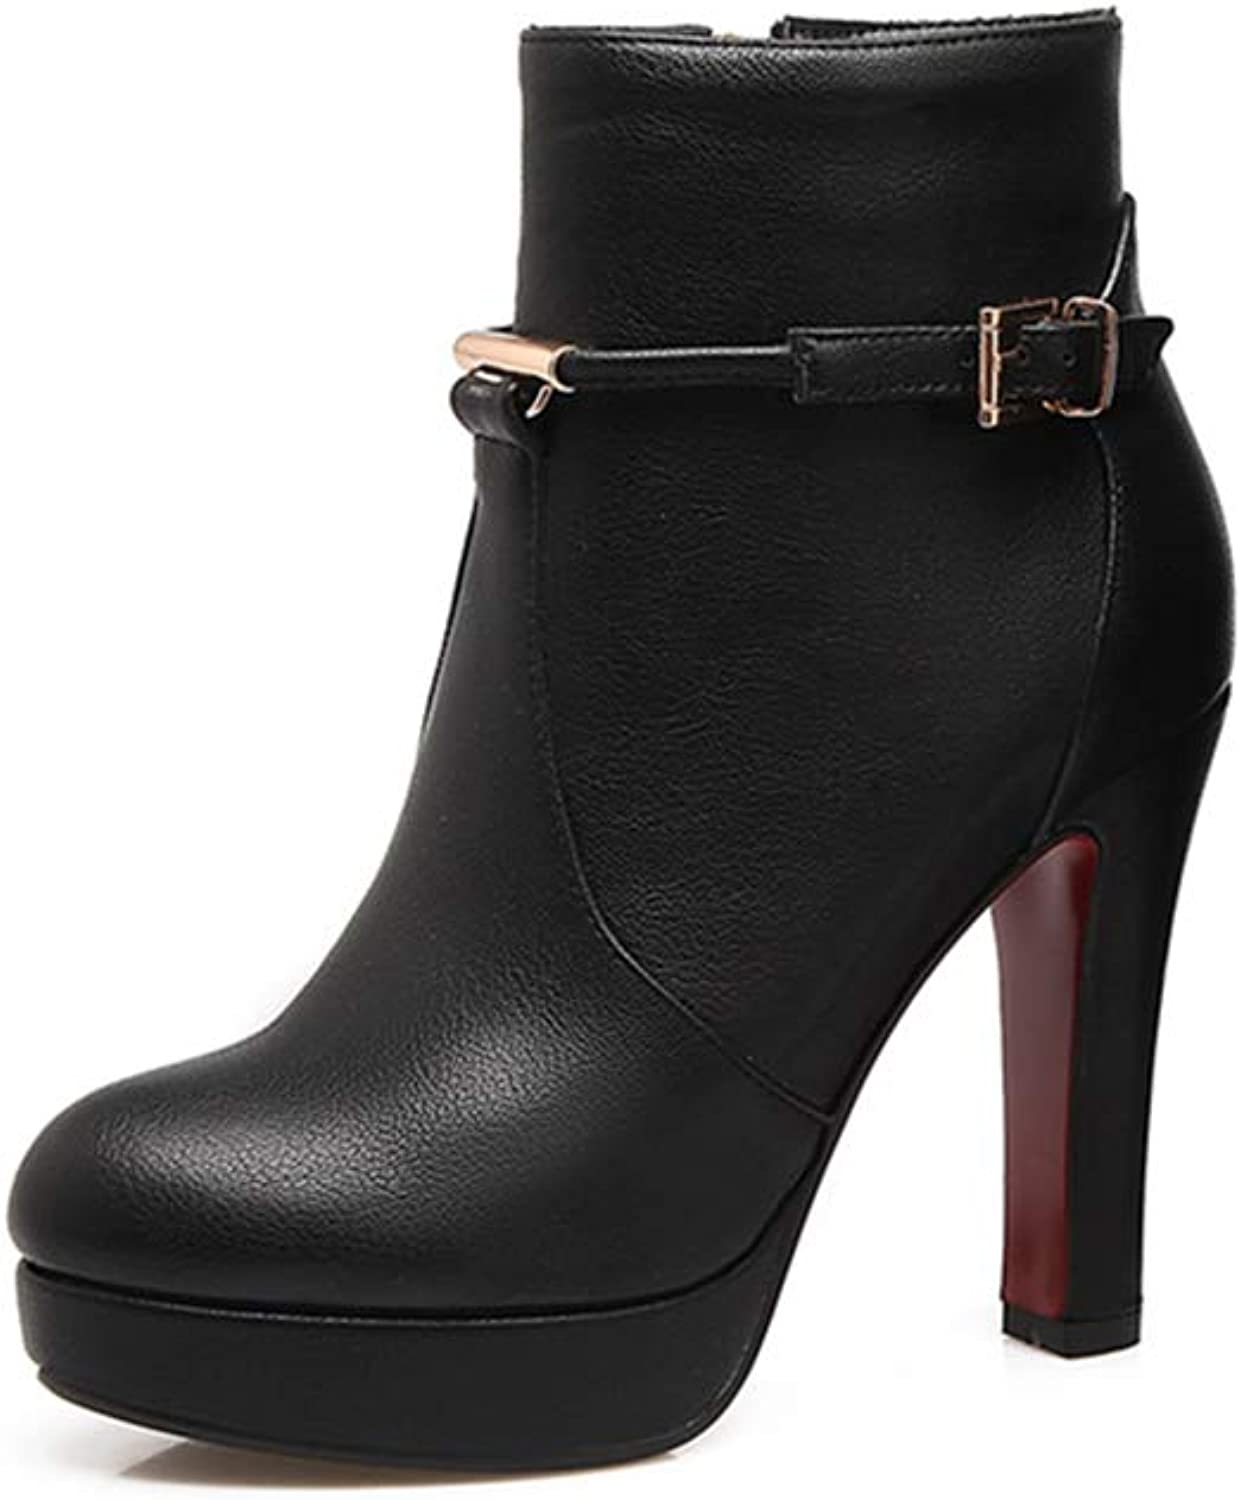 Ankle Boots Thin High Heel Buckle Black Lether Round Toe Winter Warm Fashion Short Boot